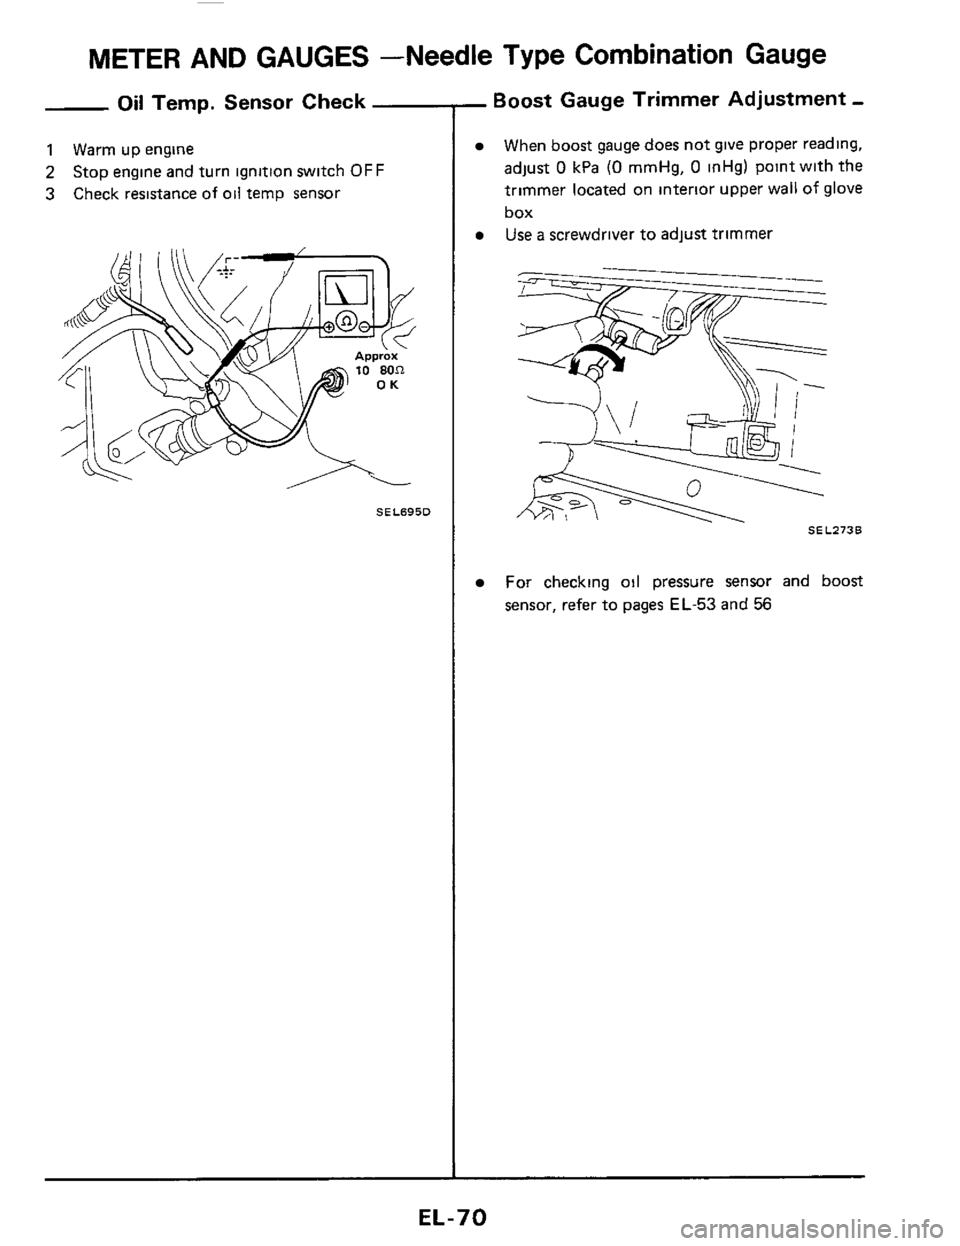 Wiring Diagram For Oil Sending Unit 84 Nissan 300zx